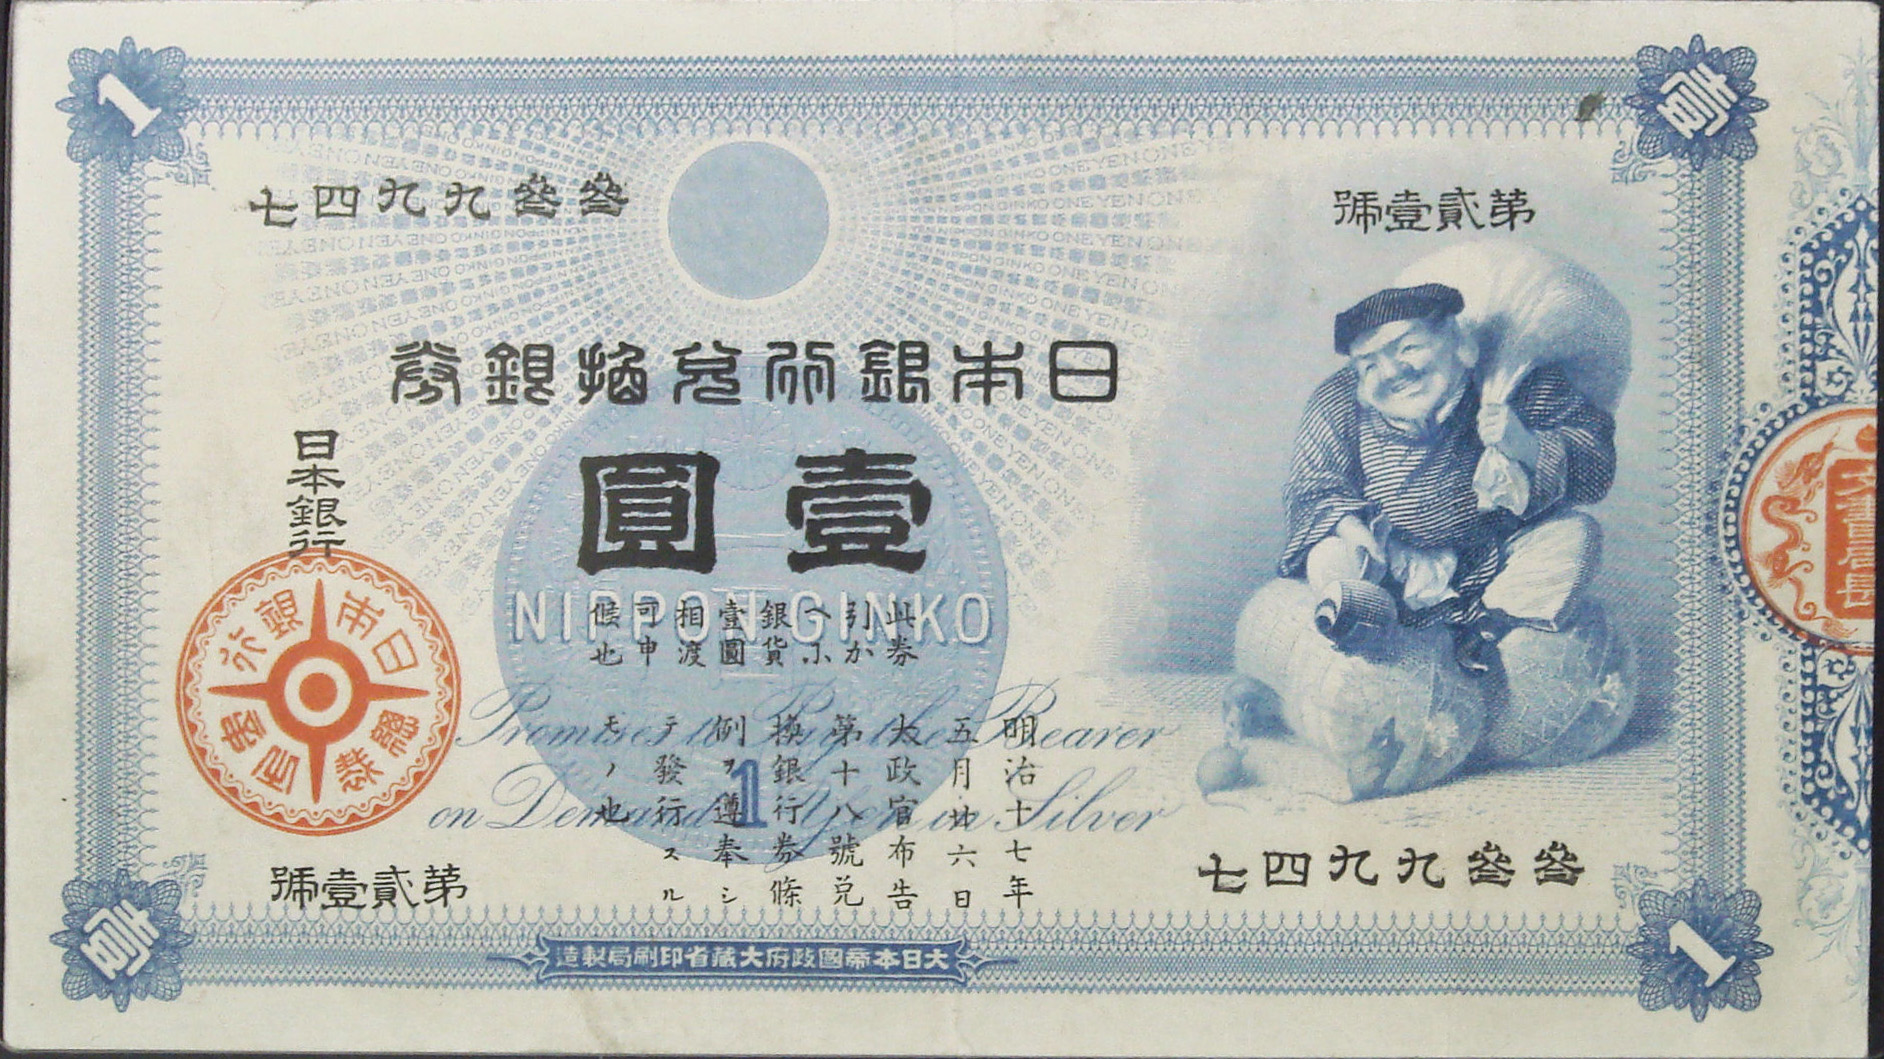 dating japanese banknotes The new nis 100 banknote is orange and features the portrait of leah goldberg (1911-1970), one of israel's leading literary figures – a poet, author, playwright, teacher, literary translator and researcher.